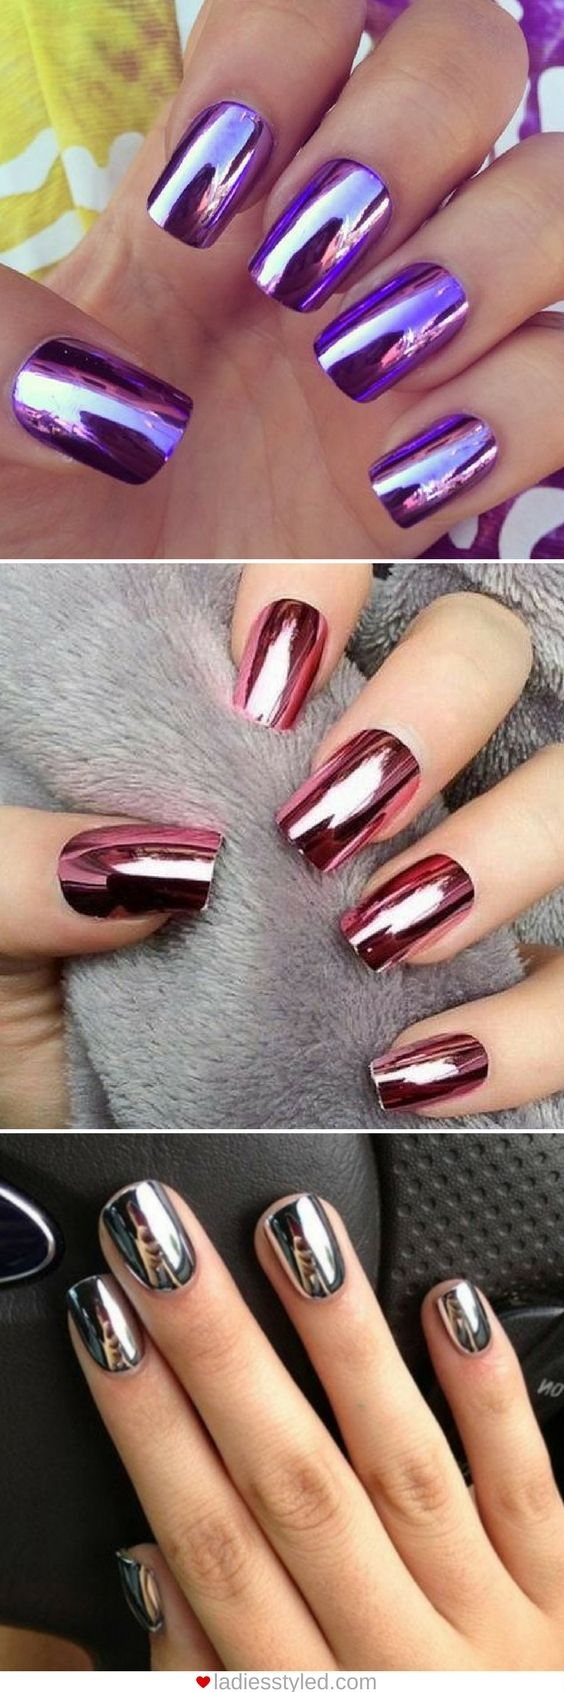 Need Some Nail Art Inspiration Browse These Beautiful Nail Art